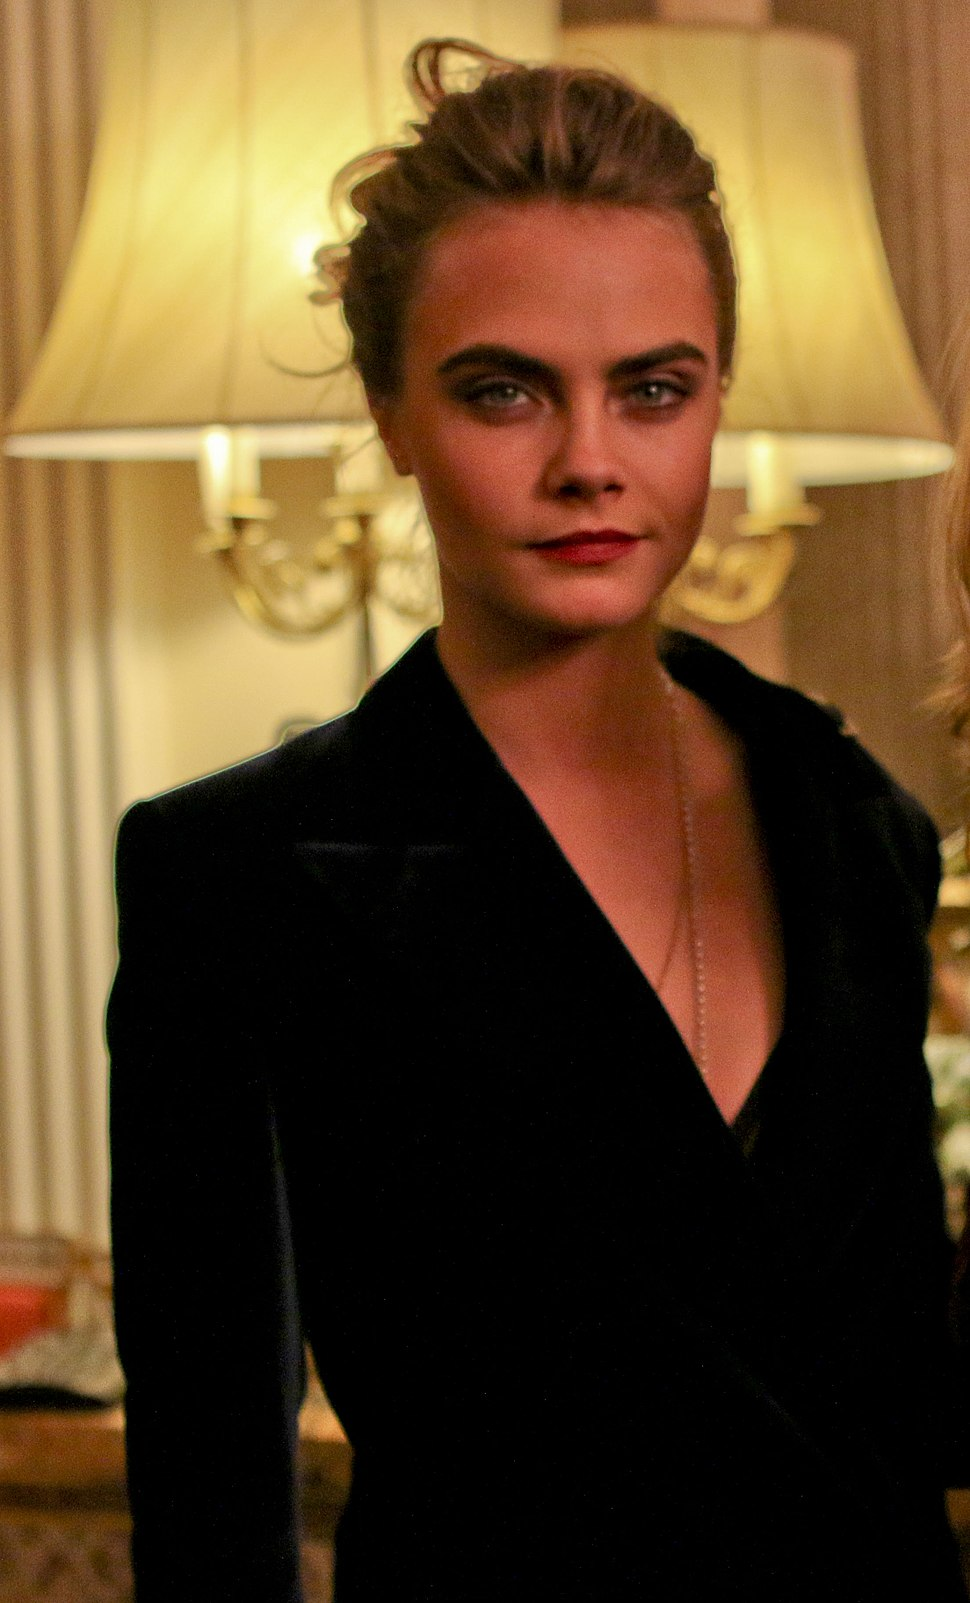 Cara Delevingne September 2014.jpg